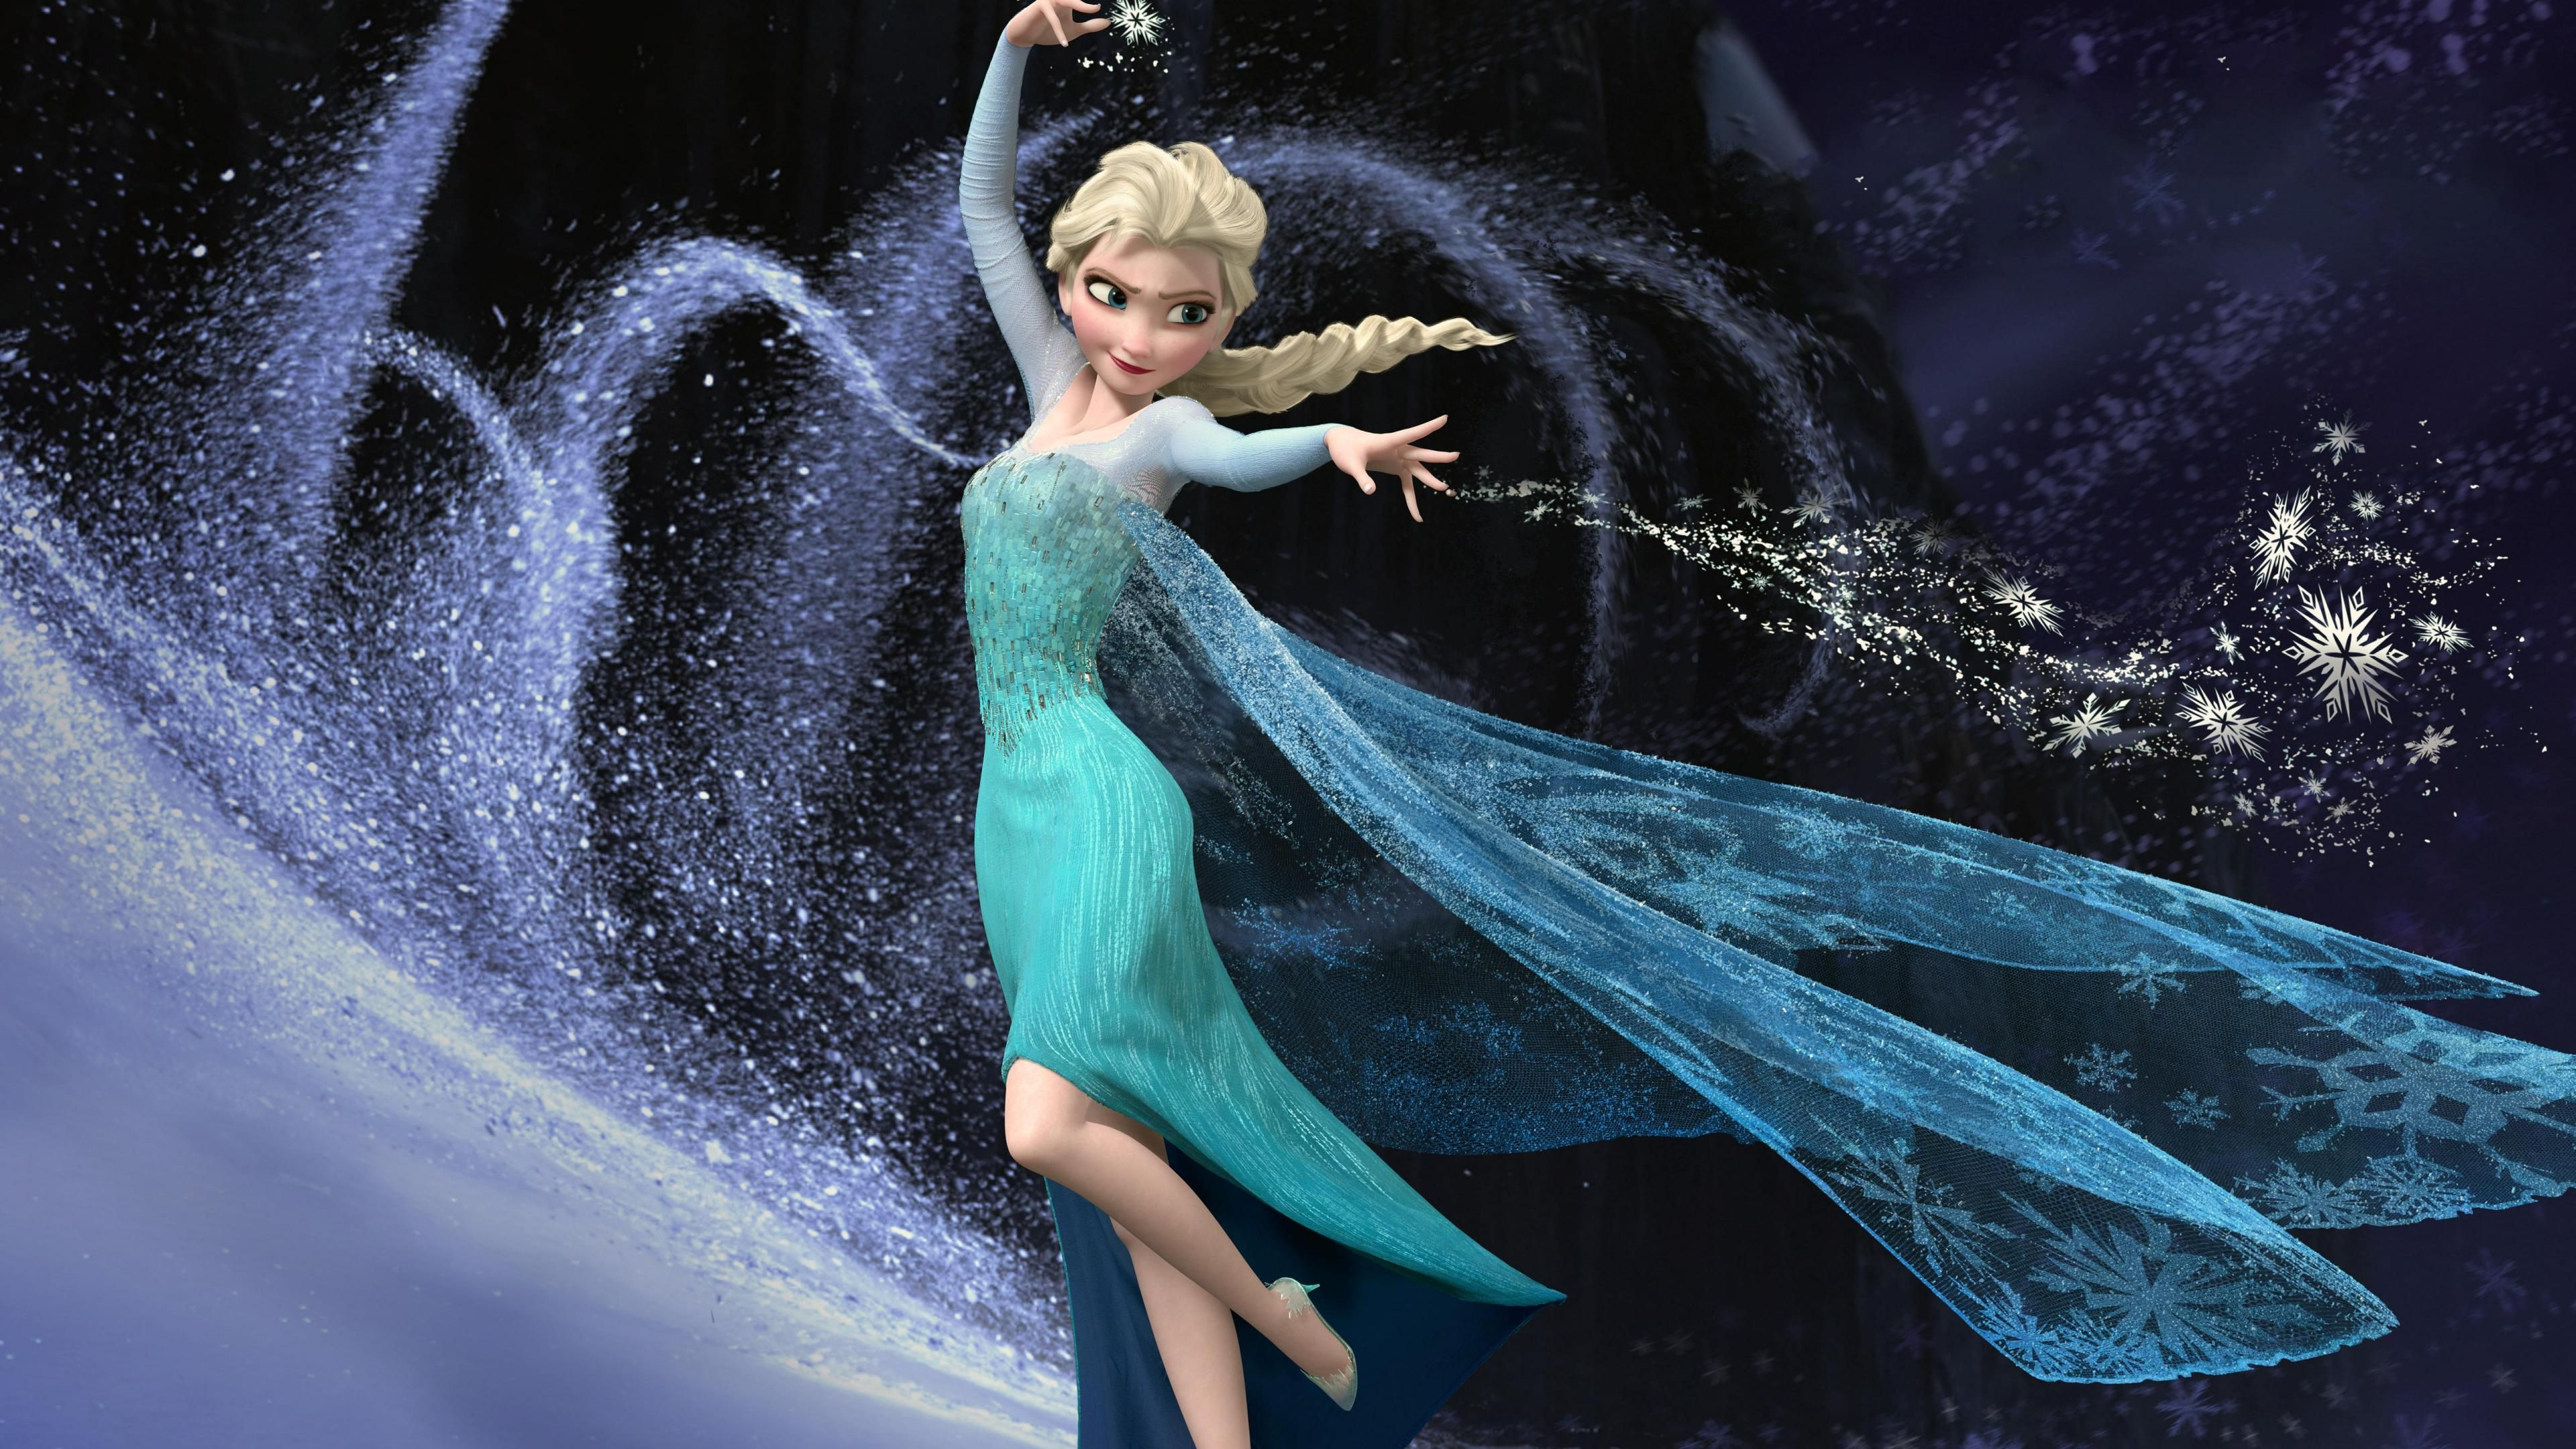 frozen hd for 3840x2160 | imagenes | pinterest | hd wallpaper, movie